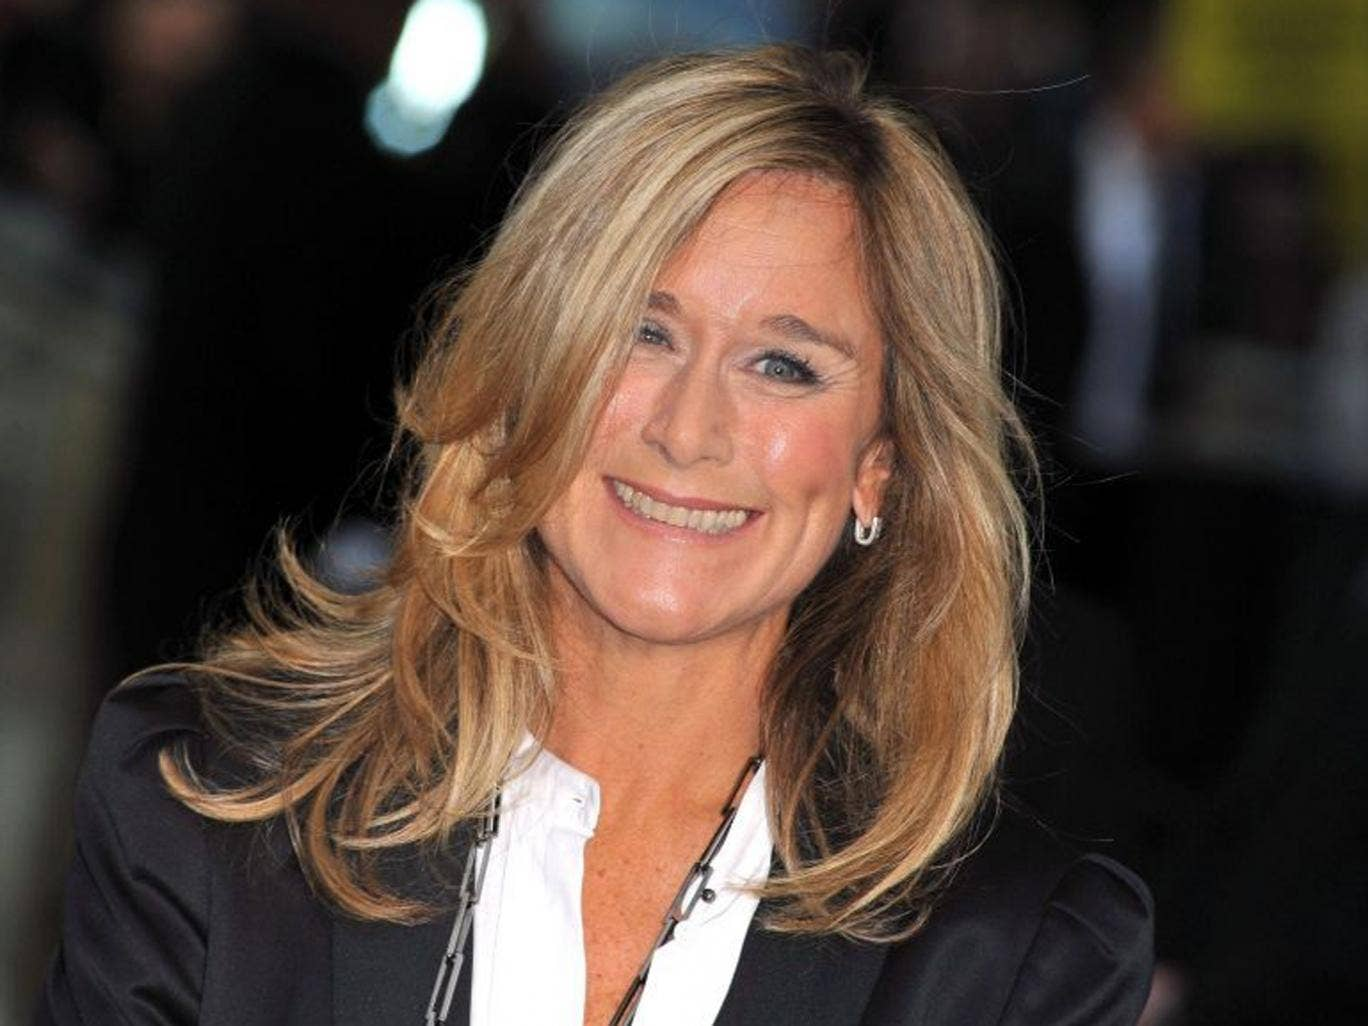 Angela Ahrendts spent more than seven years with Burberry, transforming it into a global luxury brand with a growing presence in emerging markets